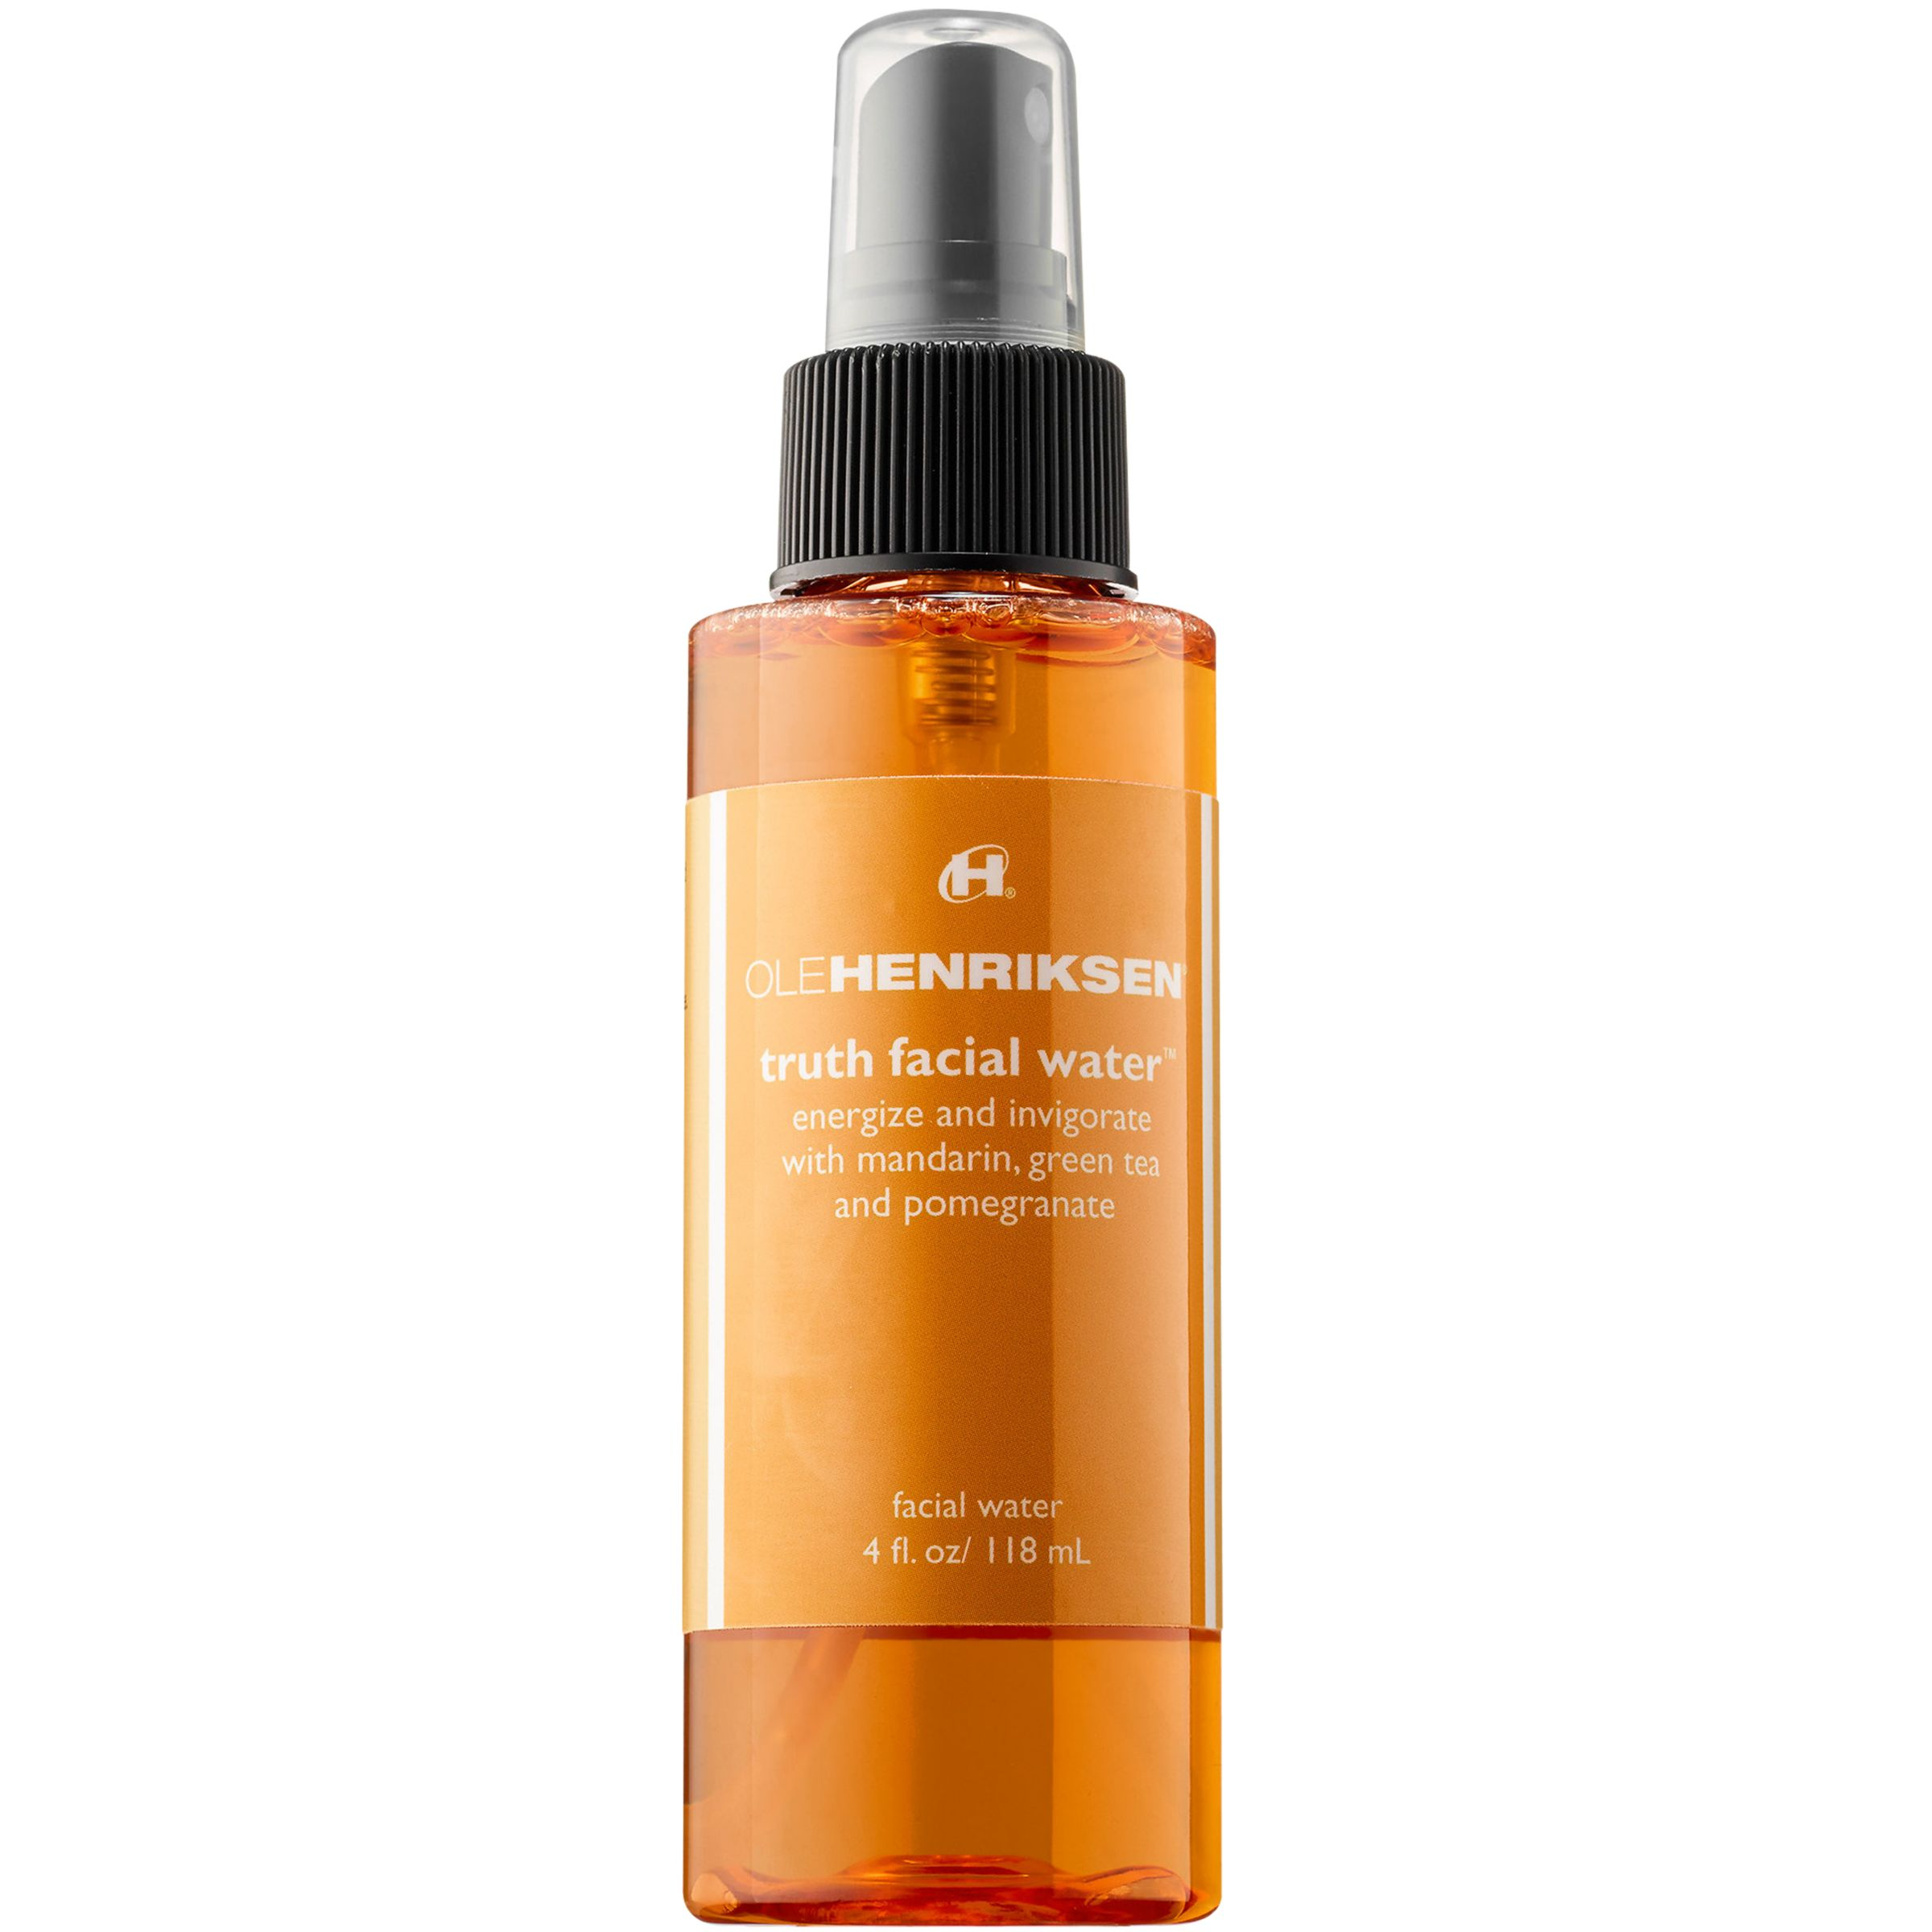 OLEHENRIKSEN OLEHENRIKSEN Truth Facial Water™, 118ml